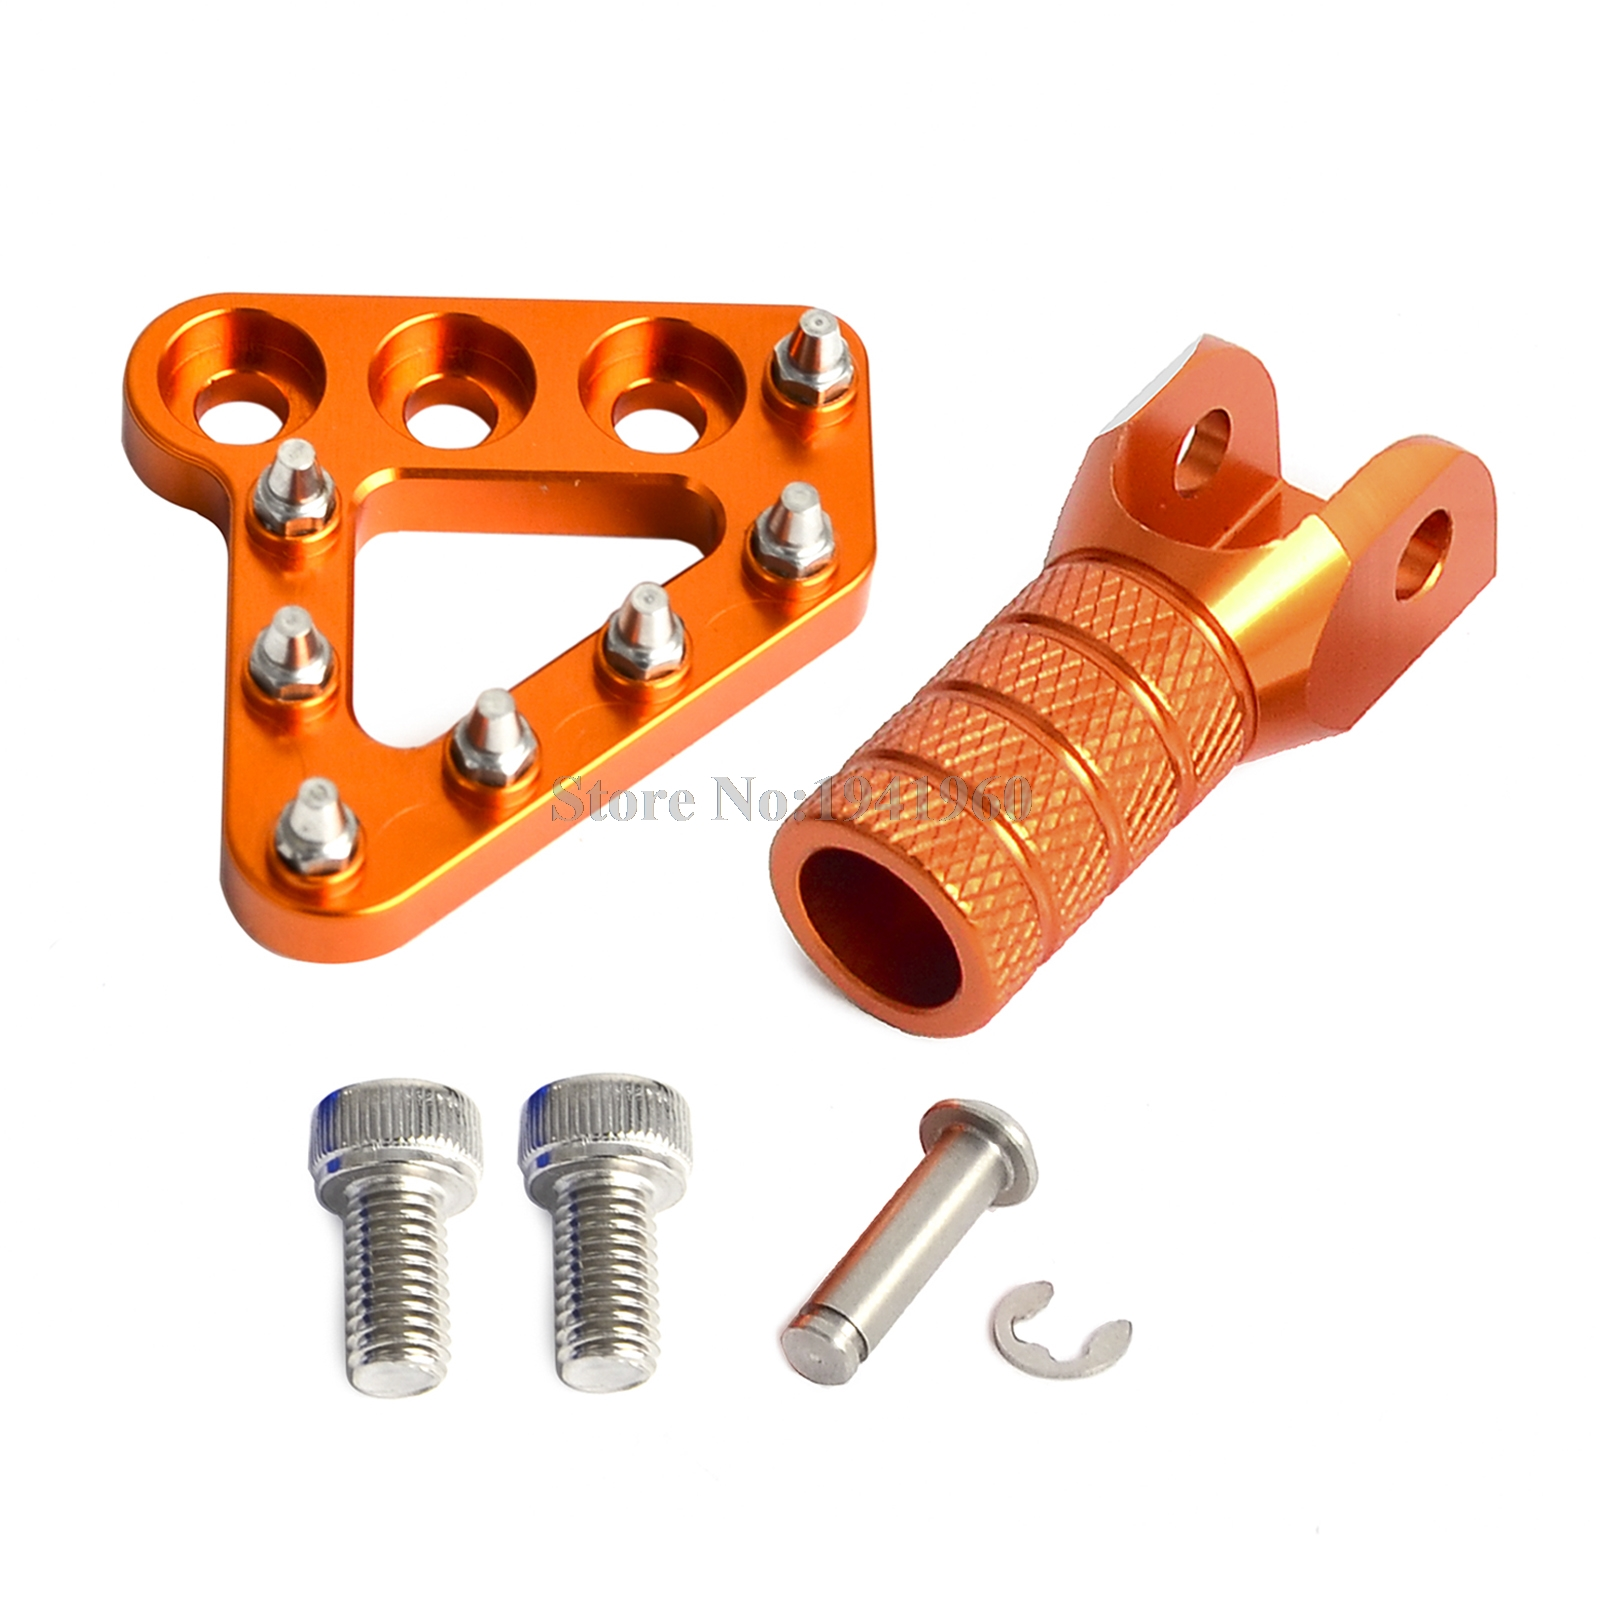 NICECNC Rear Brake Pedal Step Tip Gear Shifter Lever Tip For KTM 125 250 350 450 SX SXF EXC EXCF 690 SMC DUKE 950 990 Adventure orange billet rear brake pedal step tip for ktm 125 530 690 950 990 sx exc xcf sxf xc xcw excf excw excf duke adventure